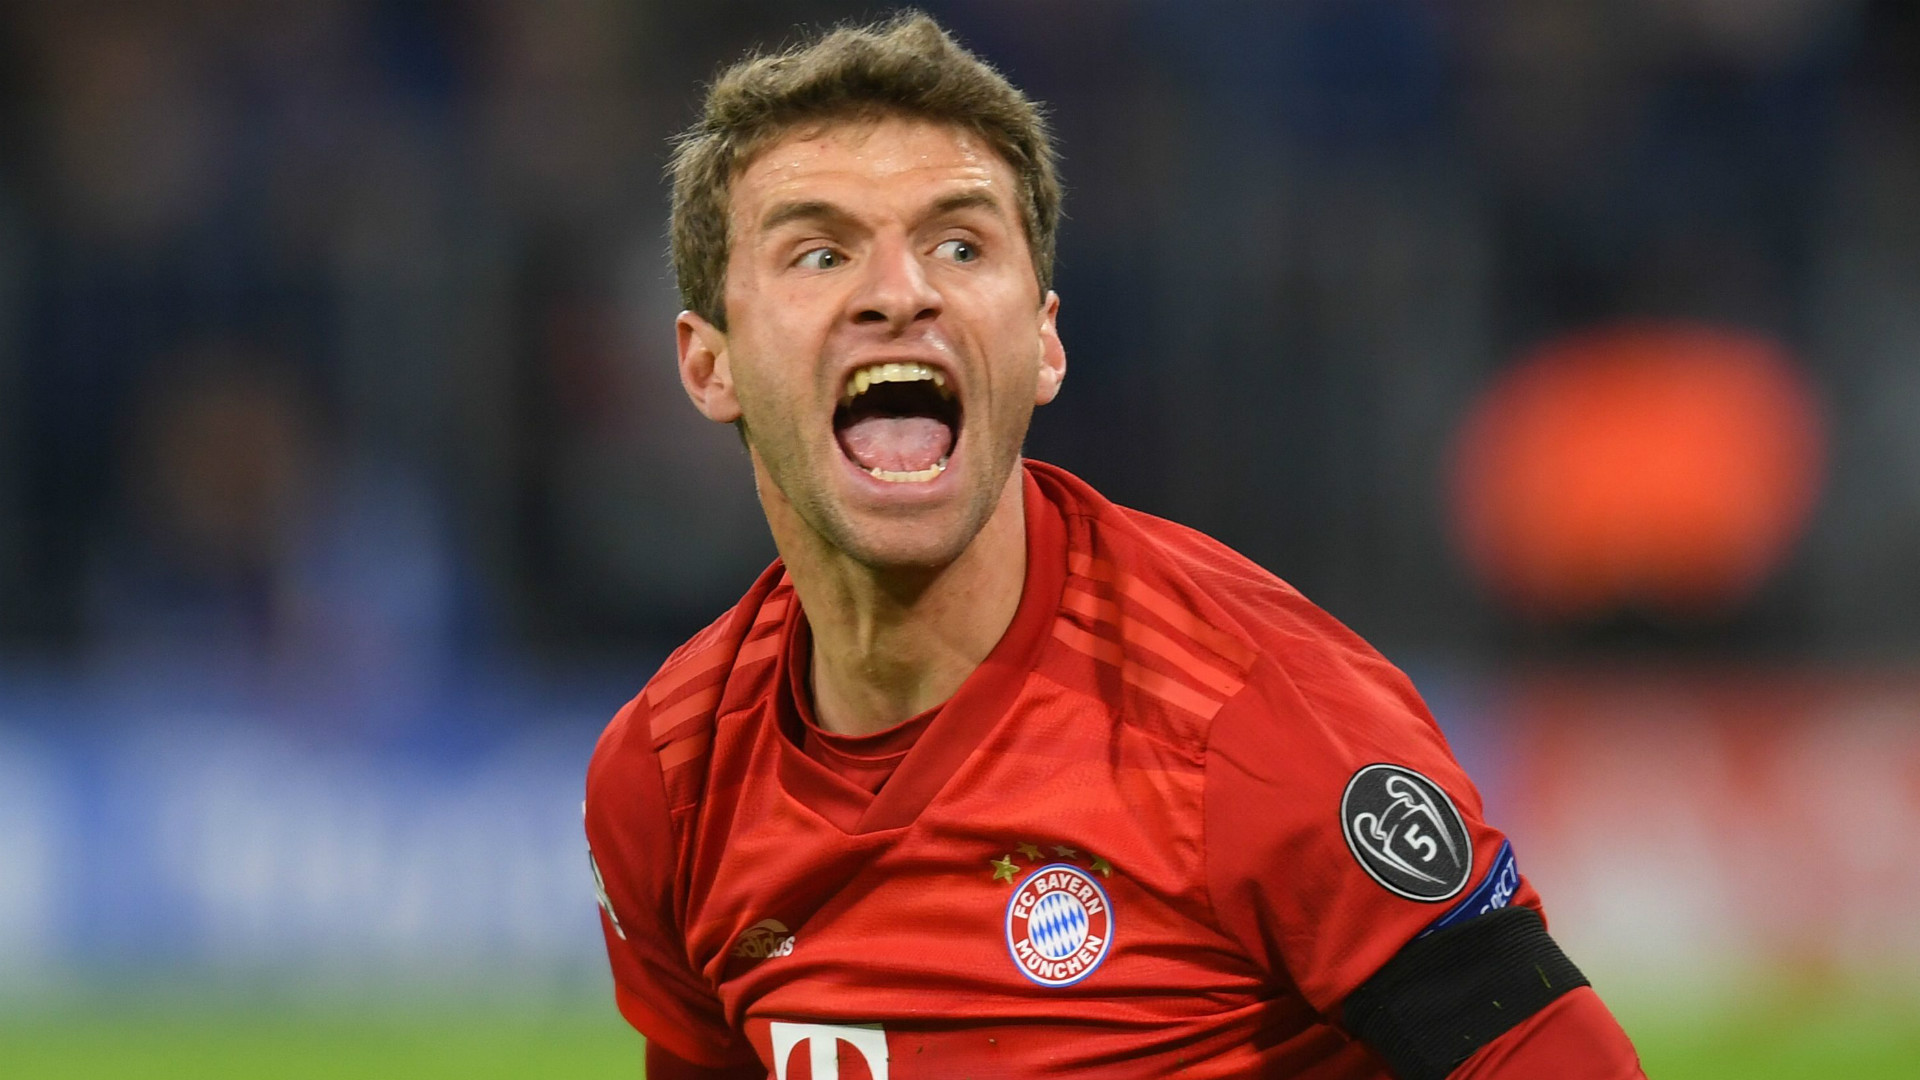 Bayern Munich are one win away from securing yet another Bundesliga title